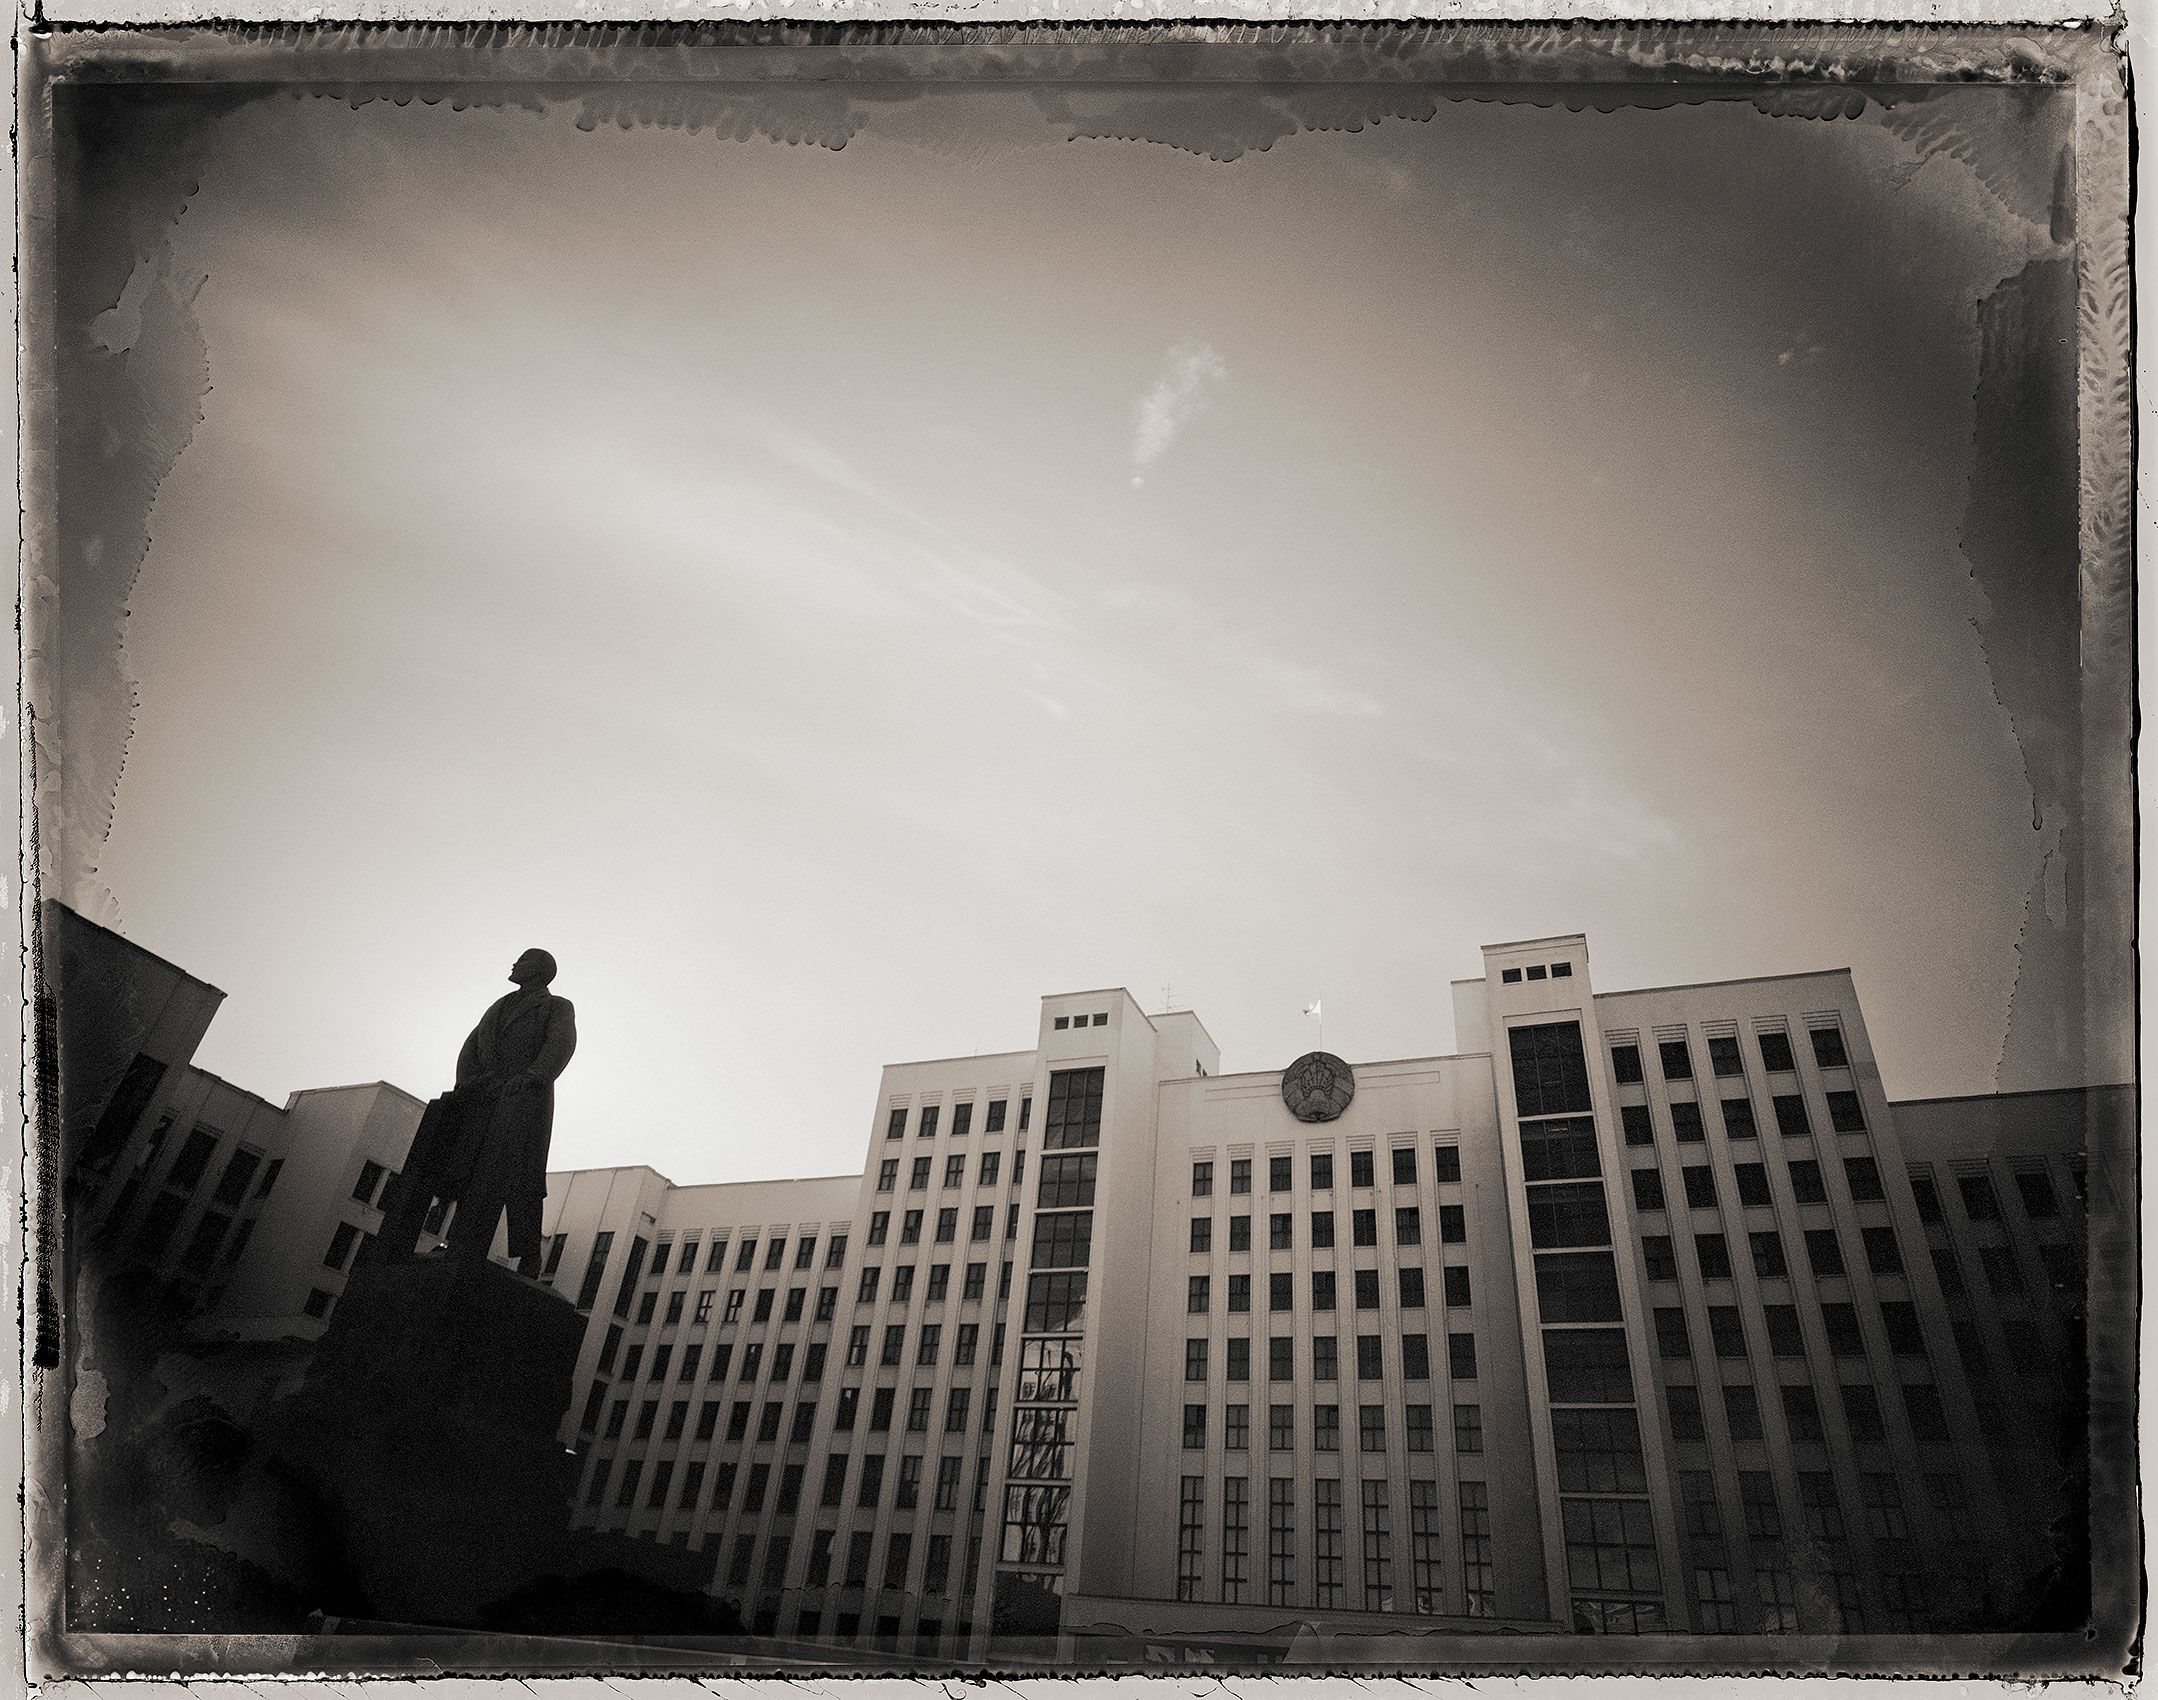 Lenin and the House of Government, Minsk, Belarus